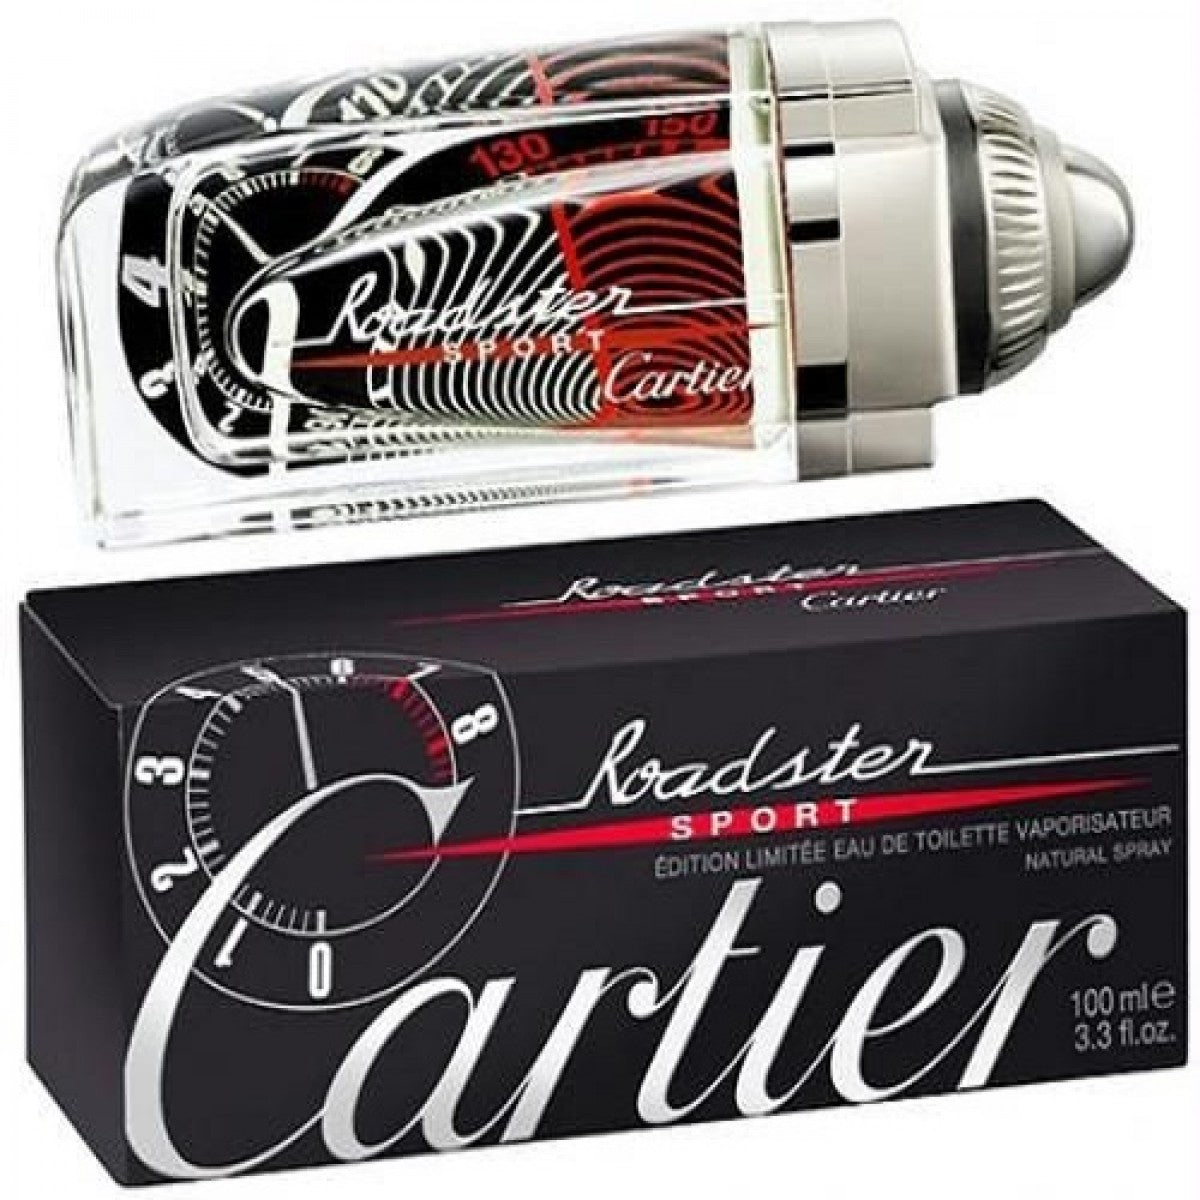 Speedometer Perfume Limited Sport Edition Roadster 100ml Cartier Edt SpqzMUV